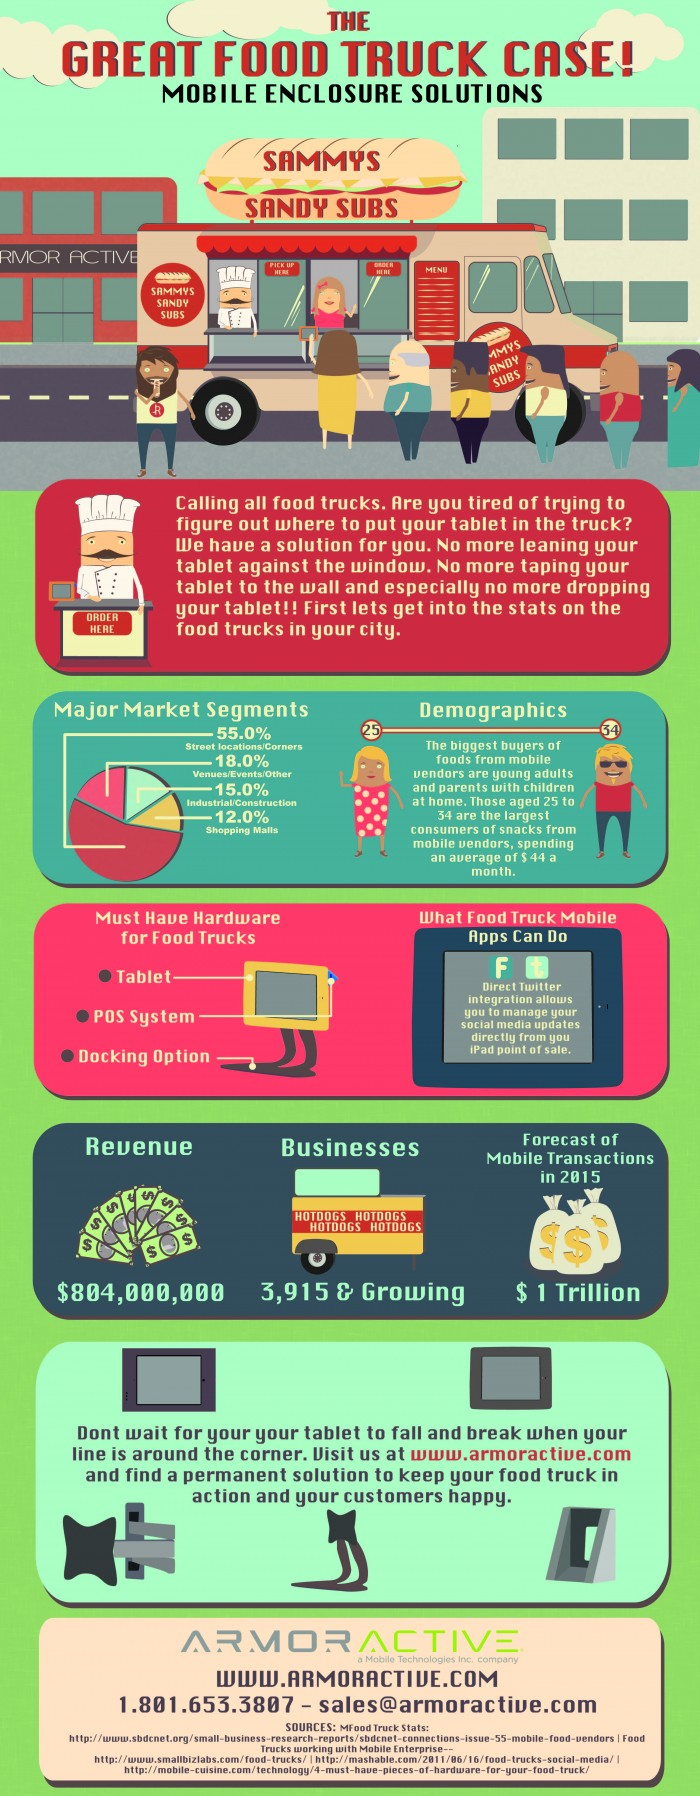 THE_GREAT_FOOD_TRUCK_CASE_INFOGRAPHIC